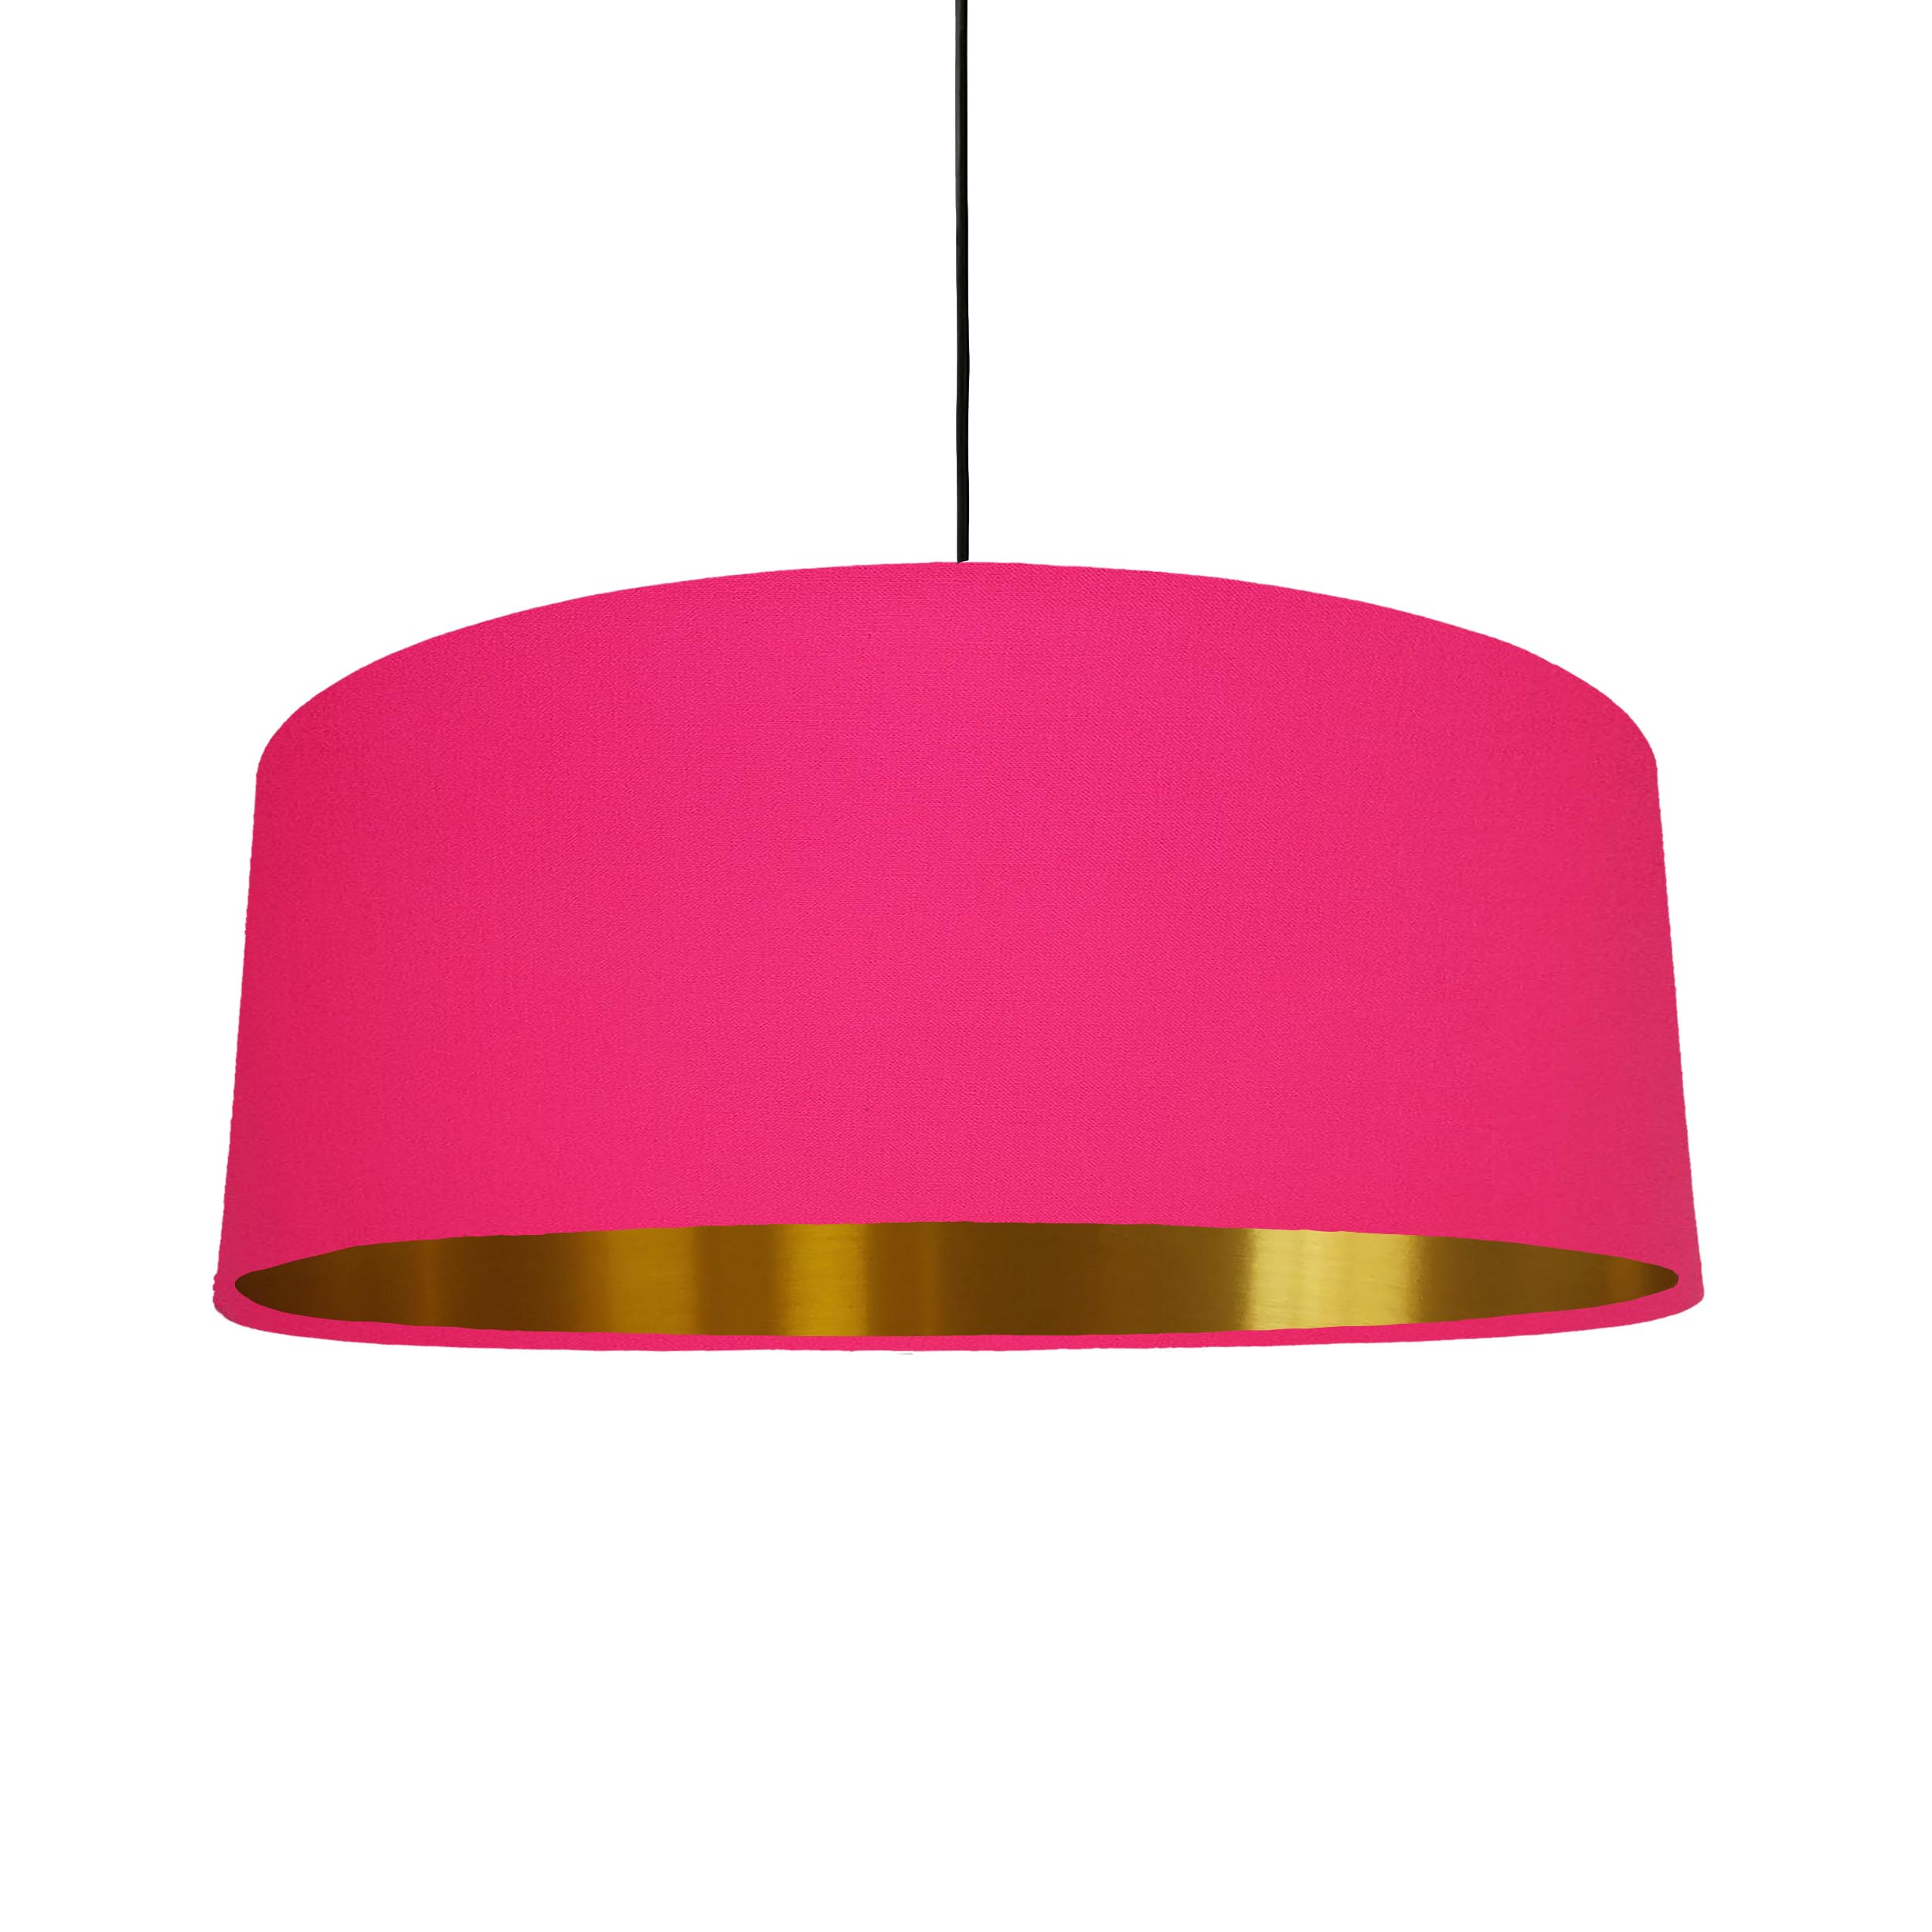 Extra Large Lampshade in Bright Pink Cotton and a Brushed Gold Lining